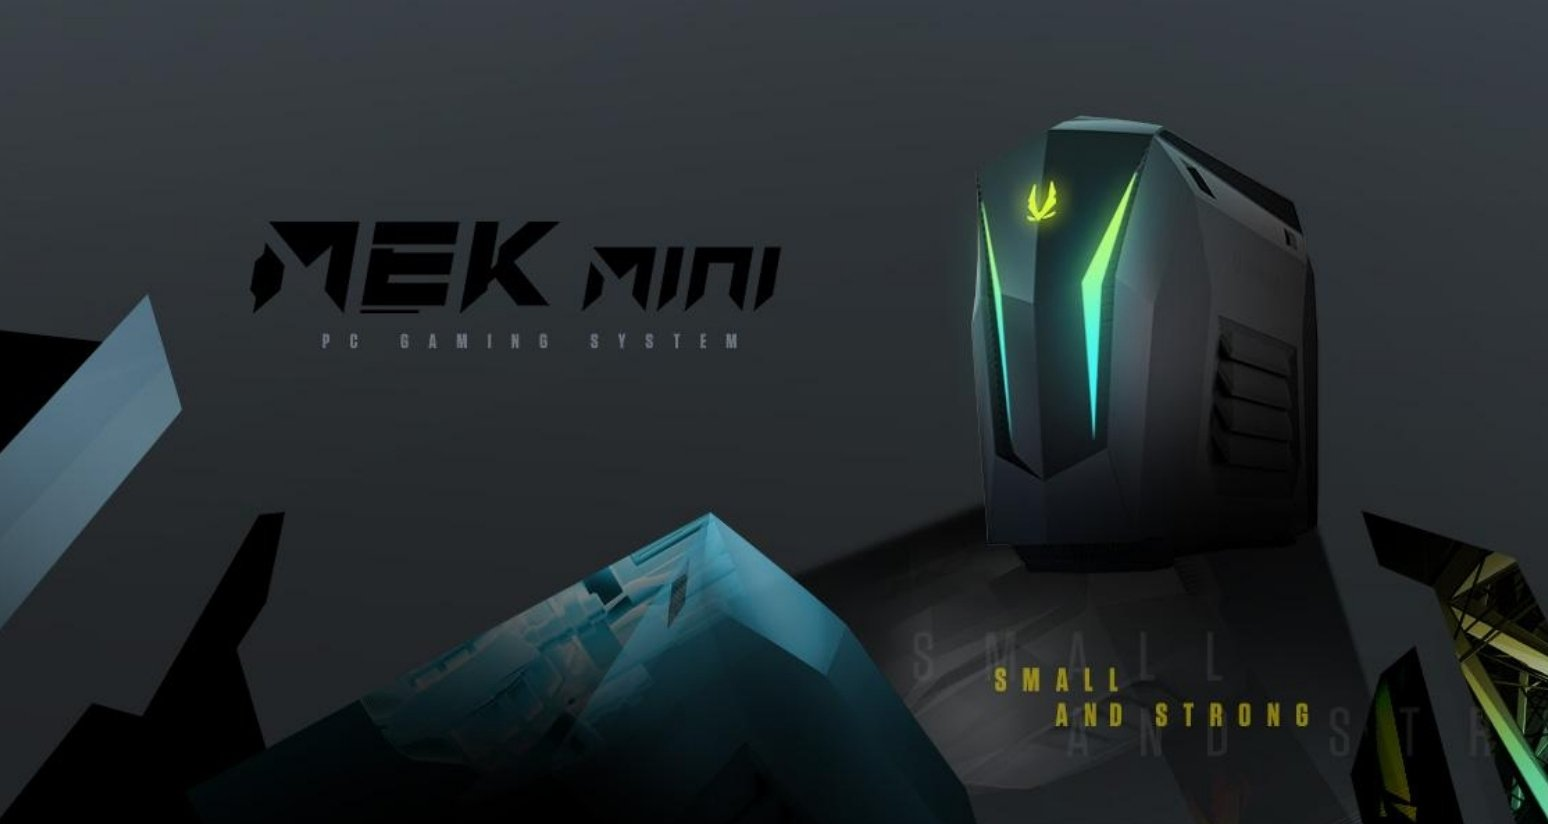 ZOTAC Introduces The Size Breaking, Small And Strong MEK